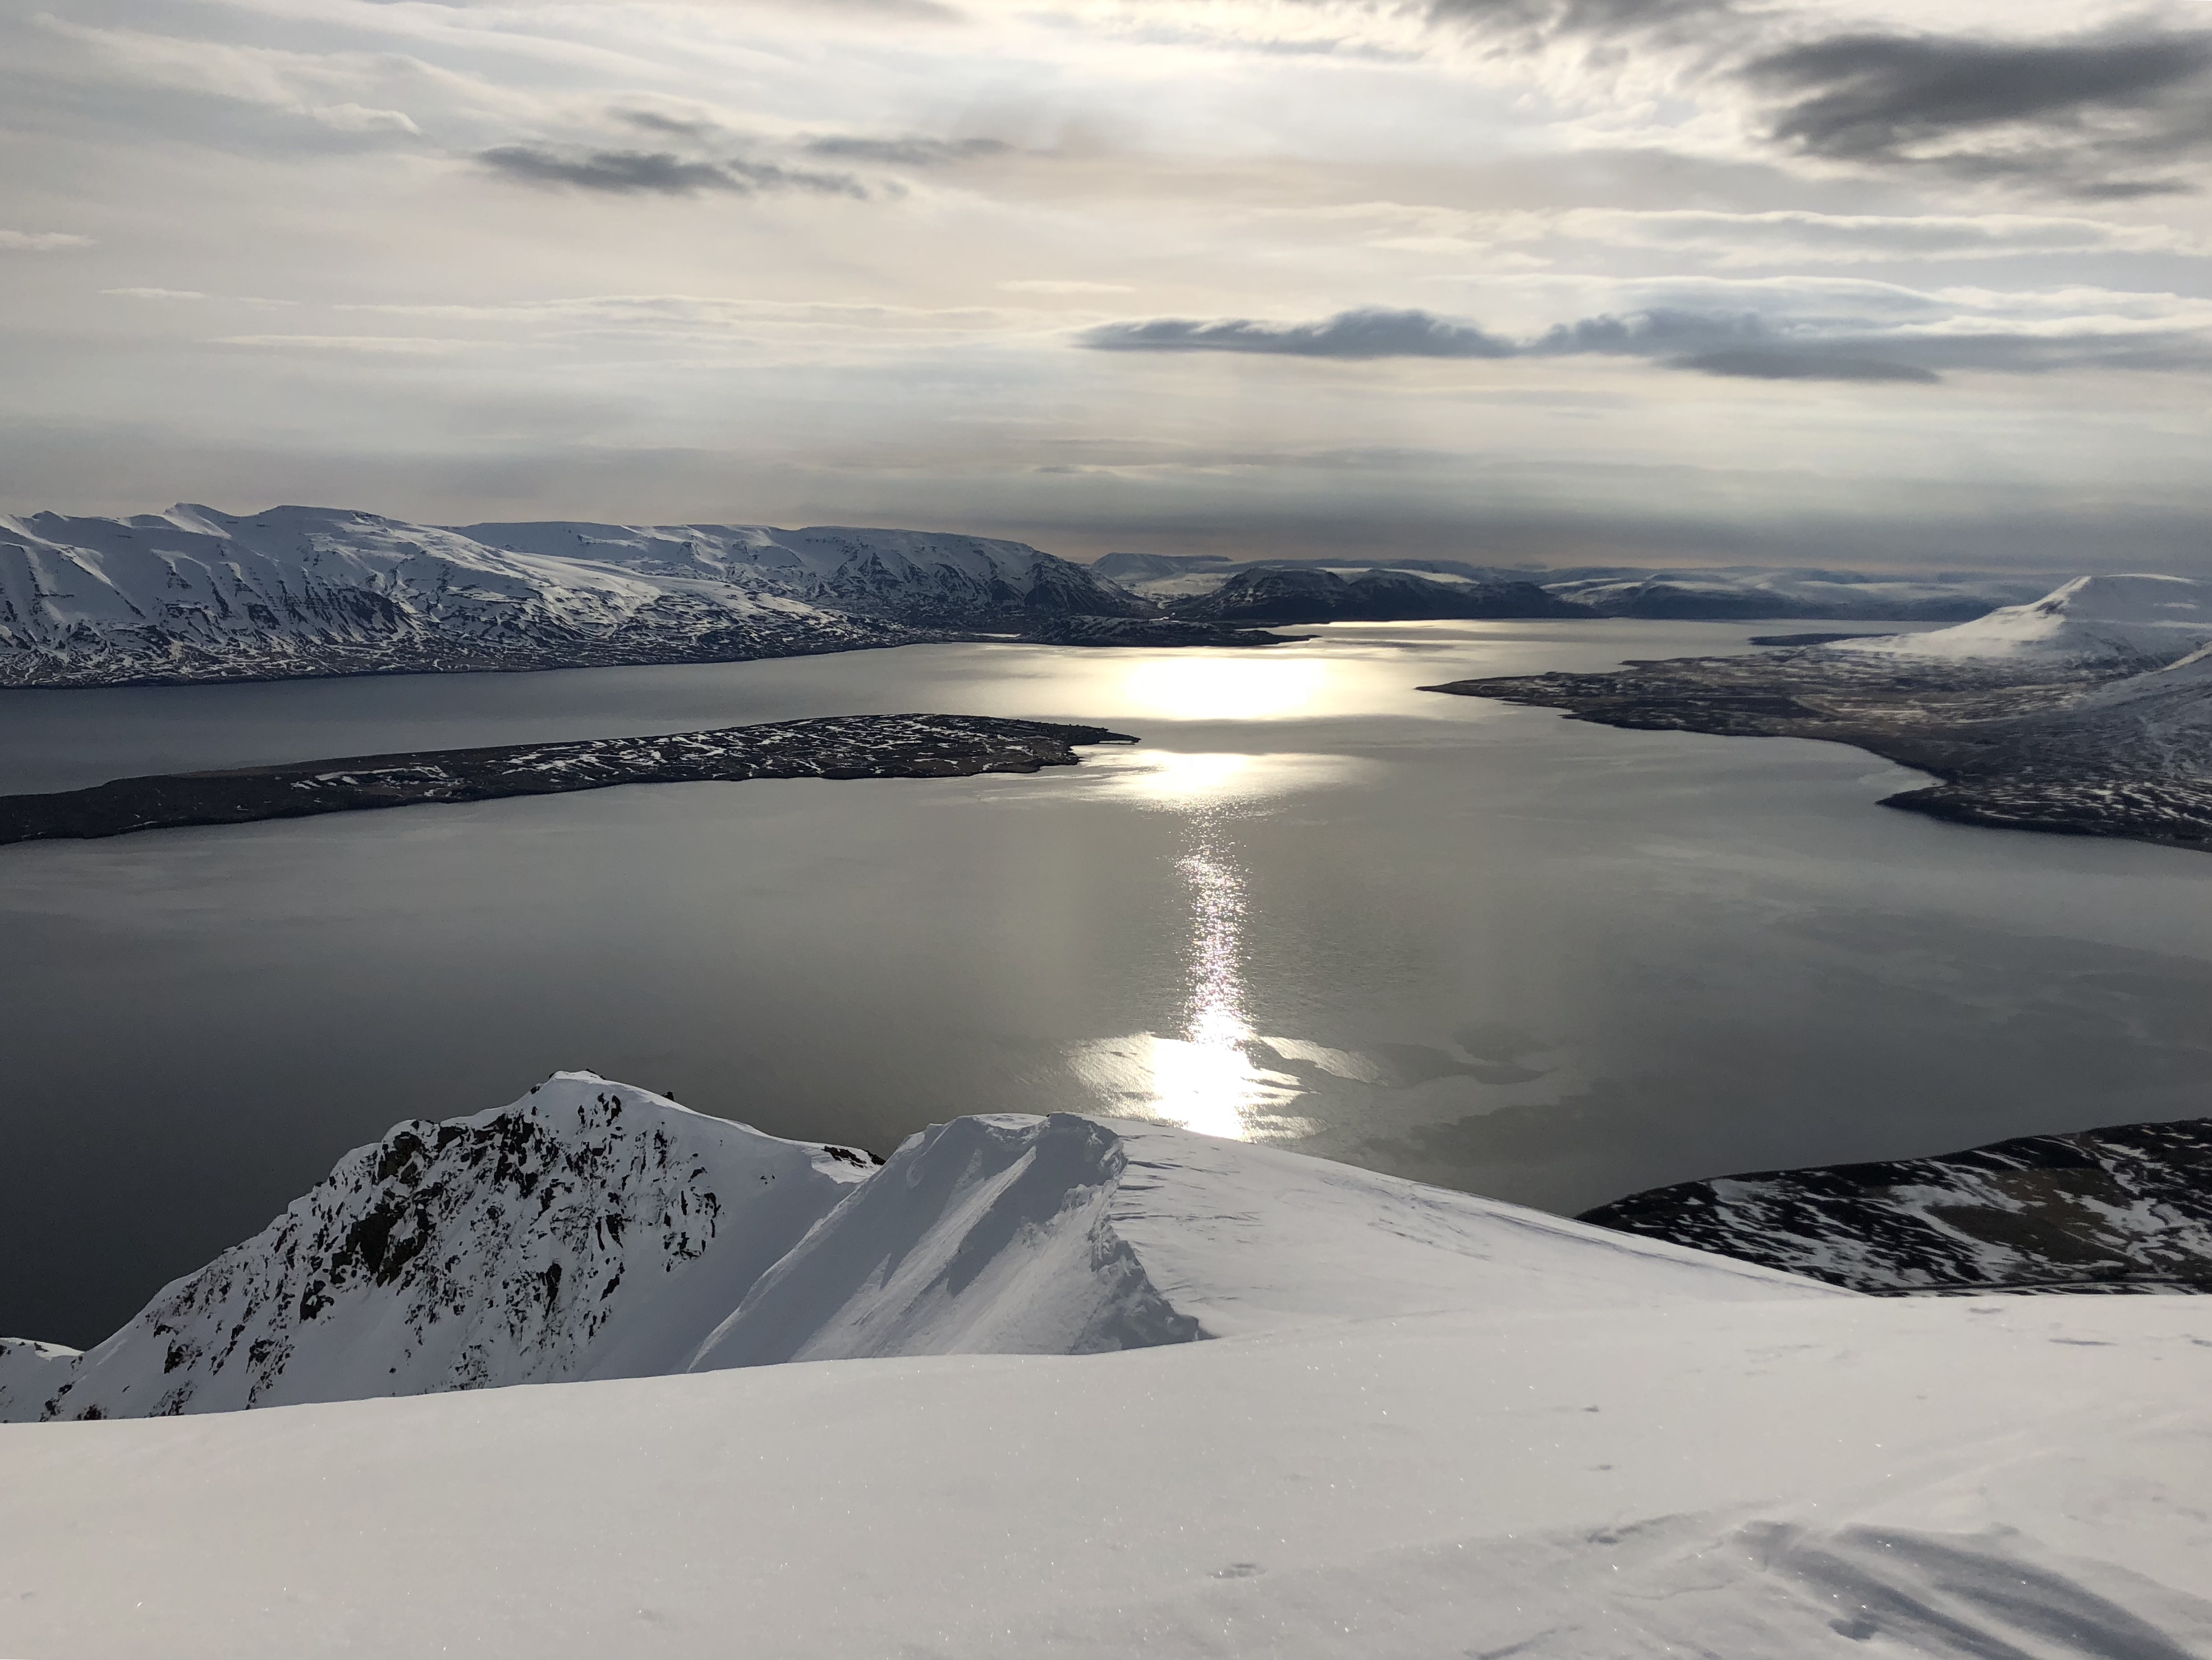 Backcountry Skiing in Iceland